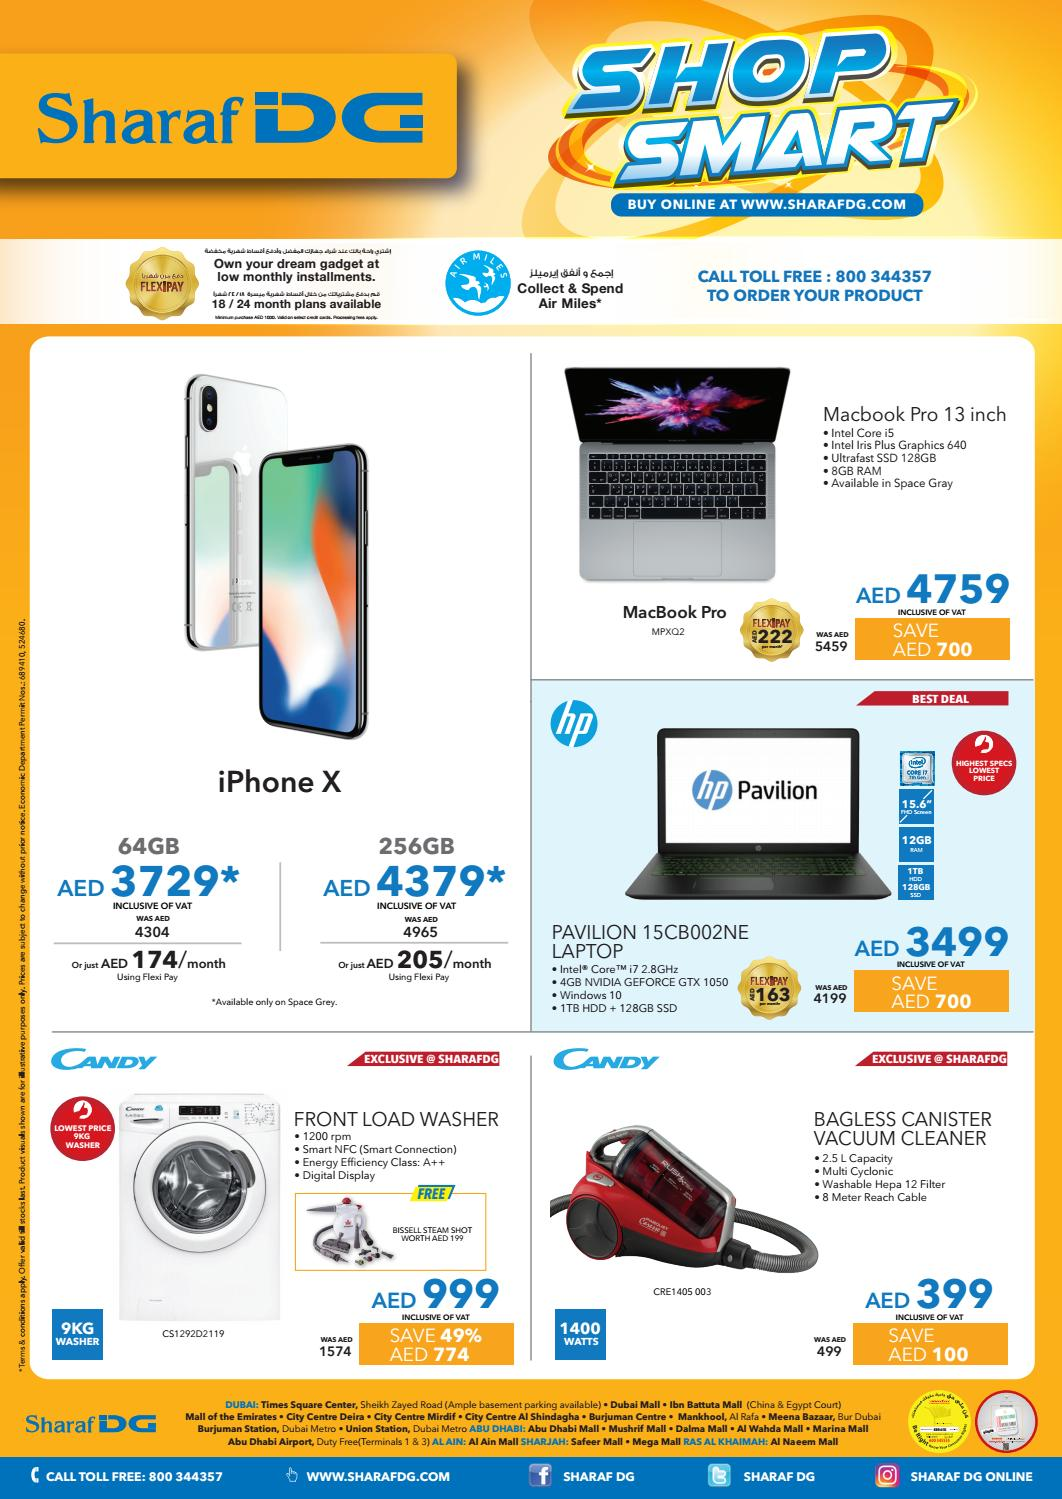 Ca  30 Resultater: Iphone X 256Gb Price In Uae Sharaf Dg